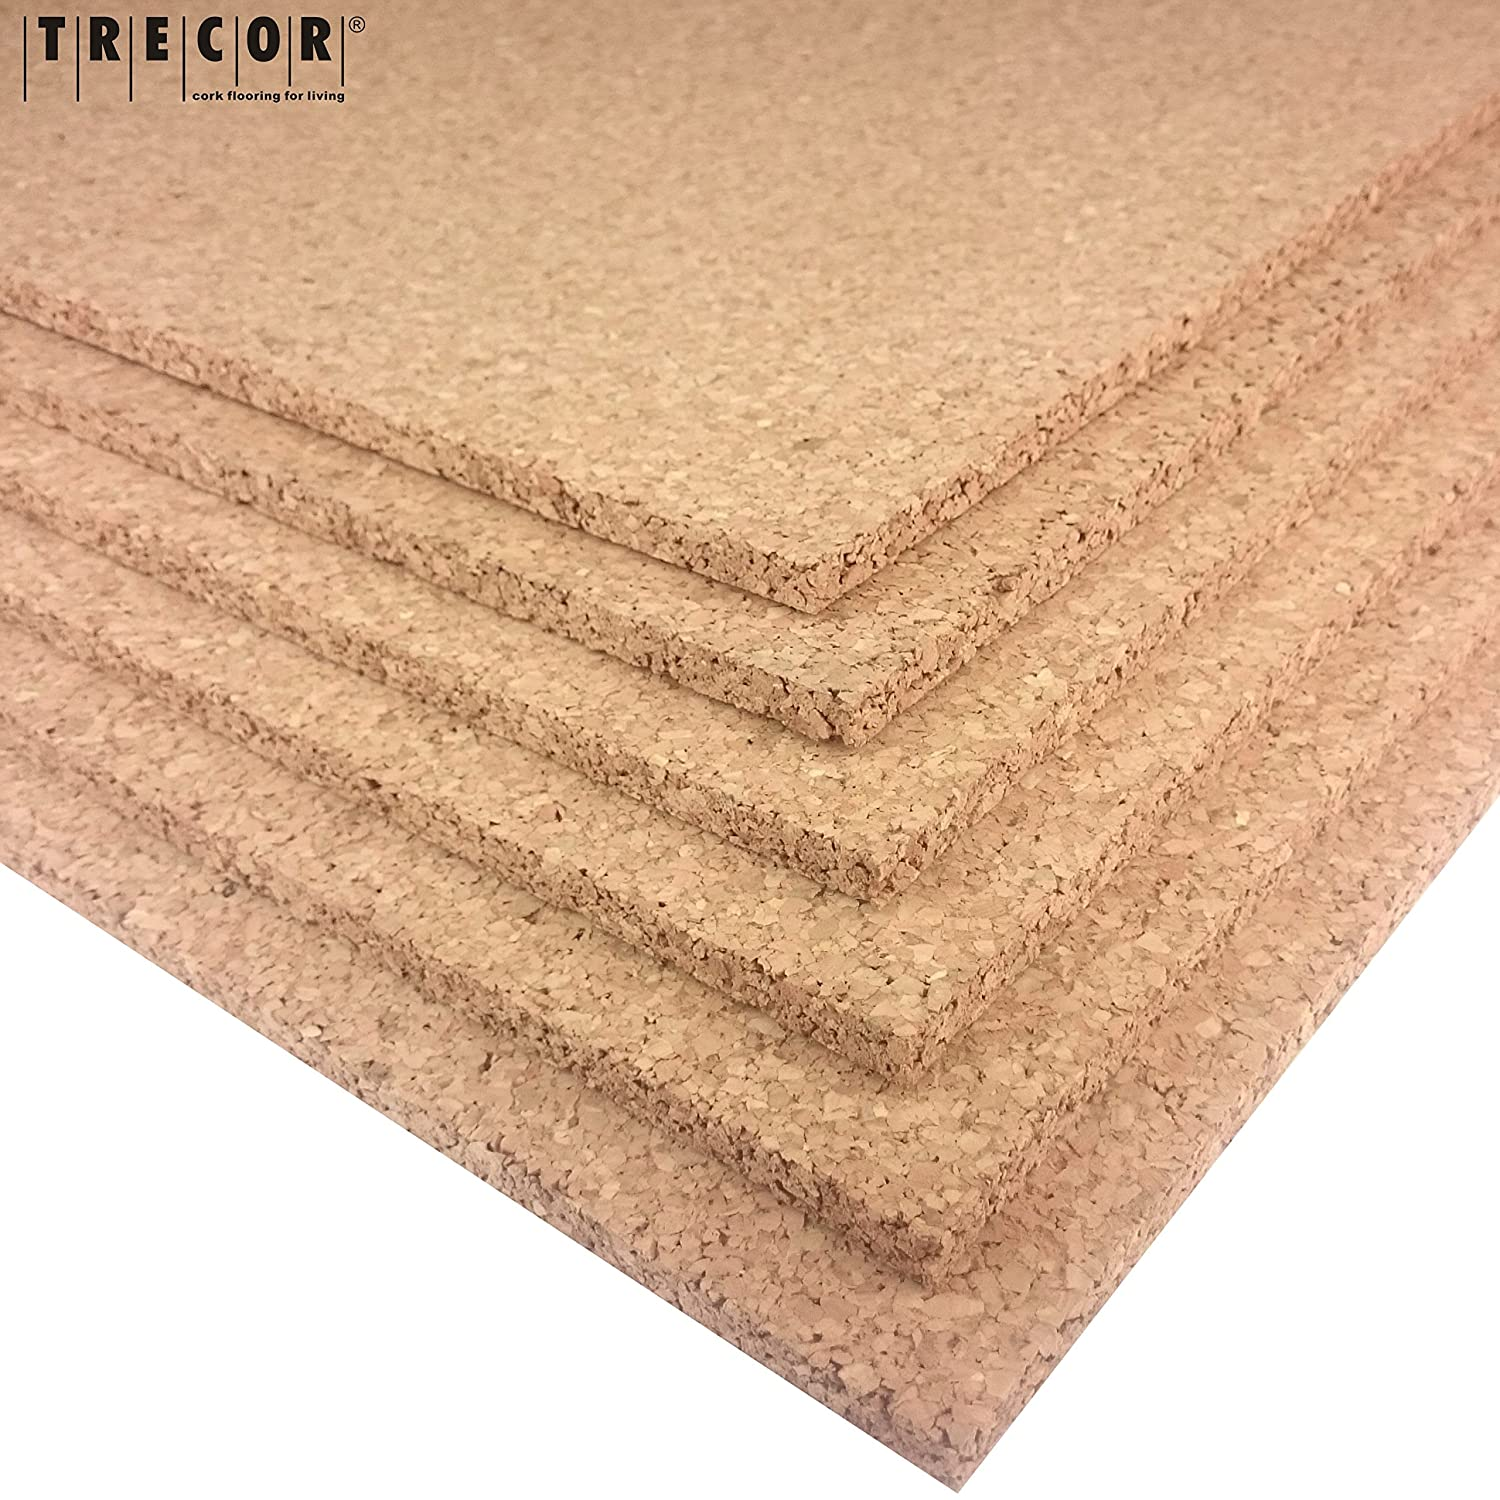 Highly Flexible and Antistatic Trecor Pin Board Cork Sheet Format: 1000 x 500 mm 20 mm High-Quality Cork Sheet Thickness: 20 mm one side honed for perfect look Thickness Options: 2